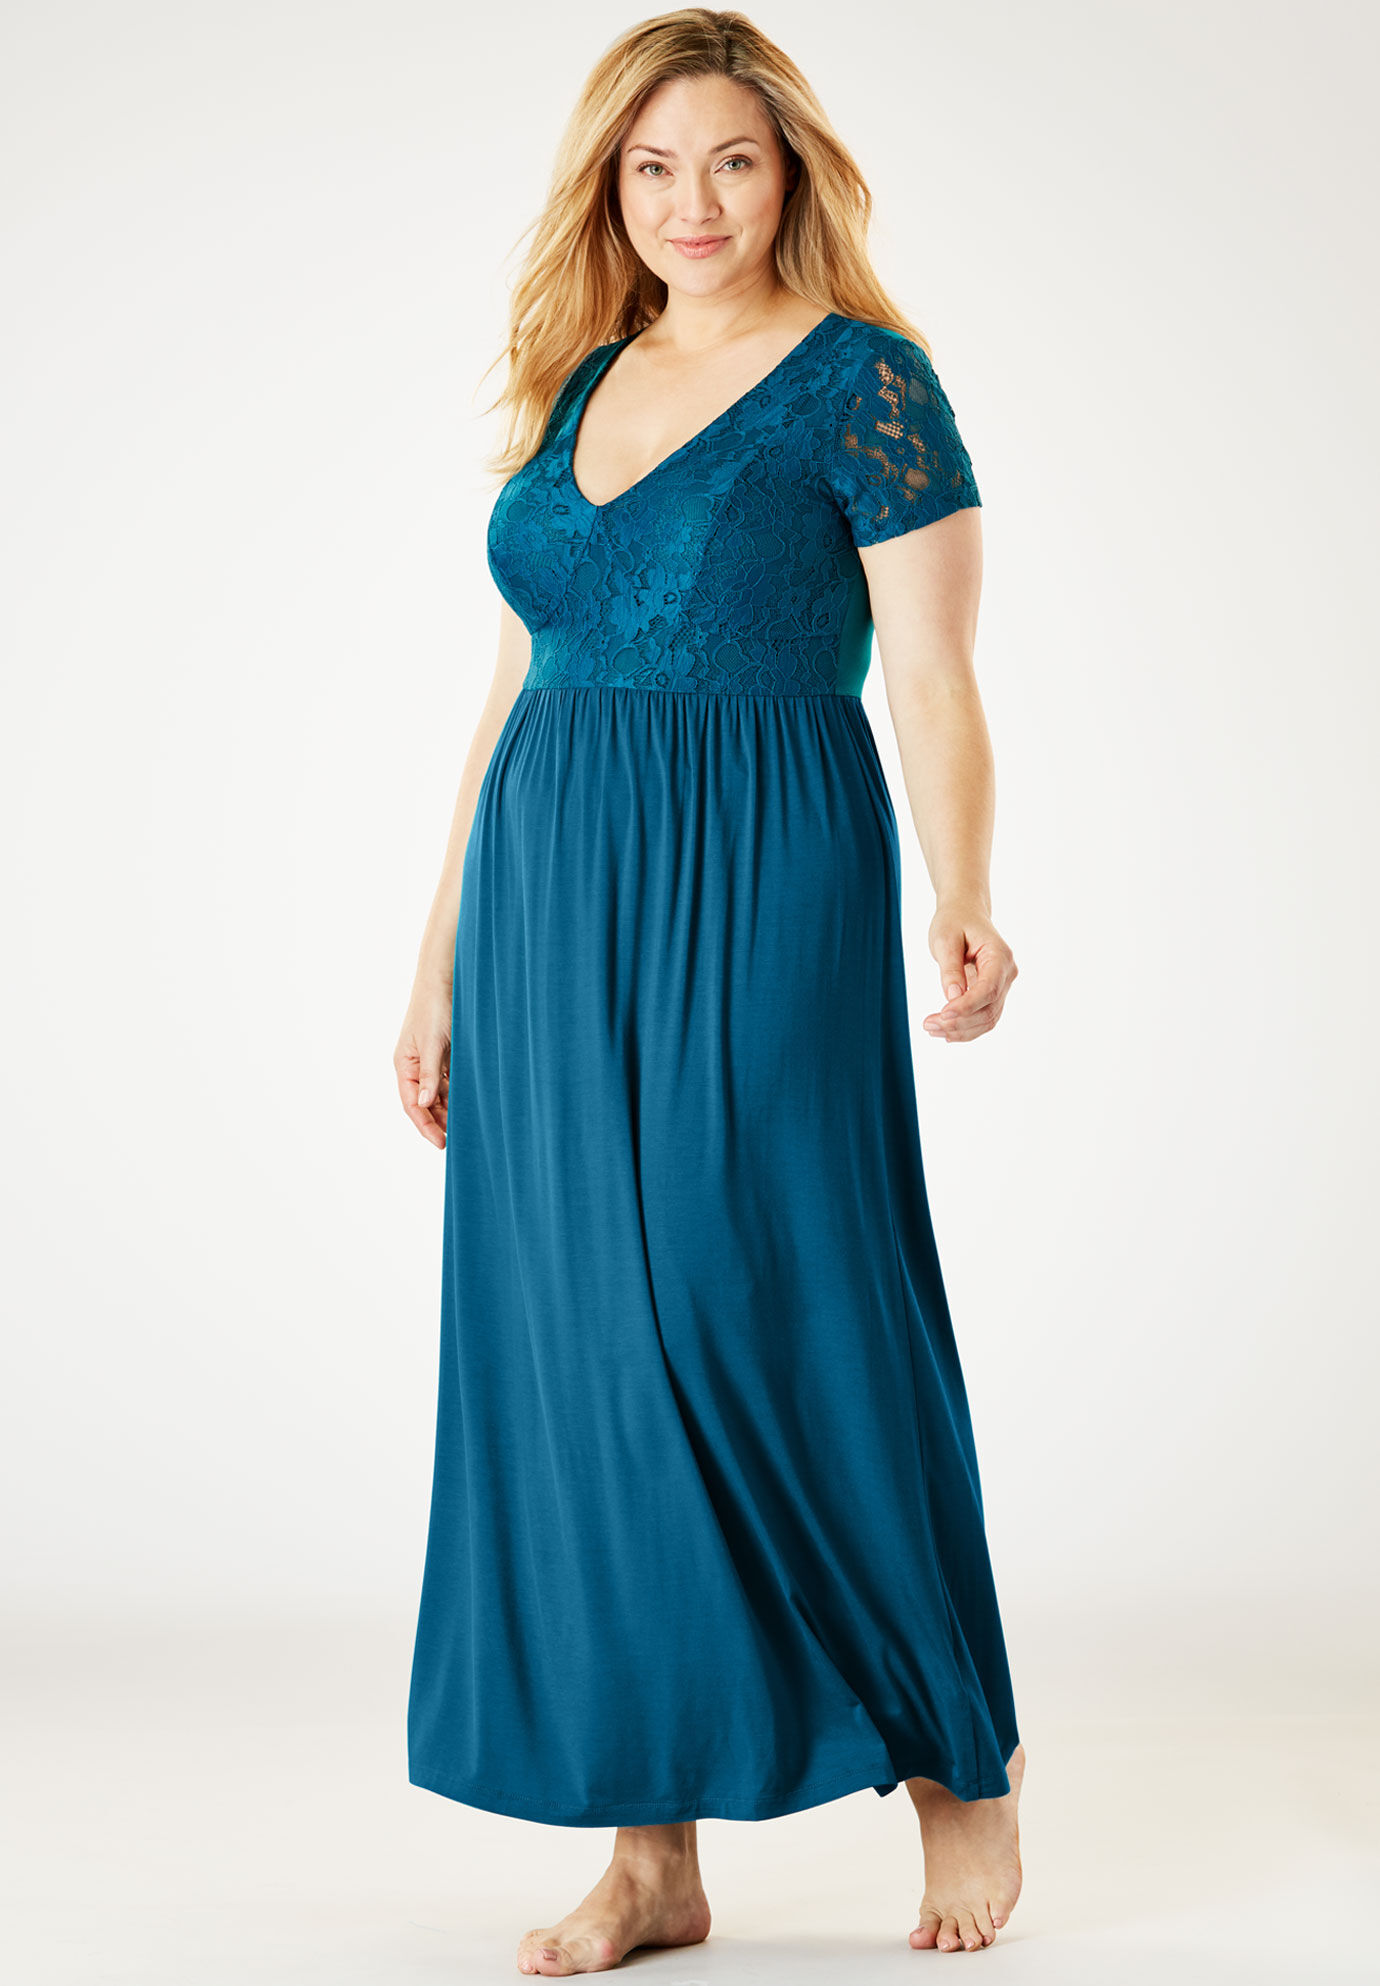 Plus Size Gowns for Women